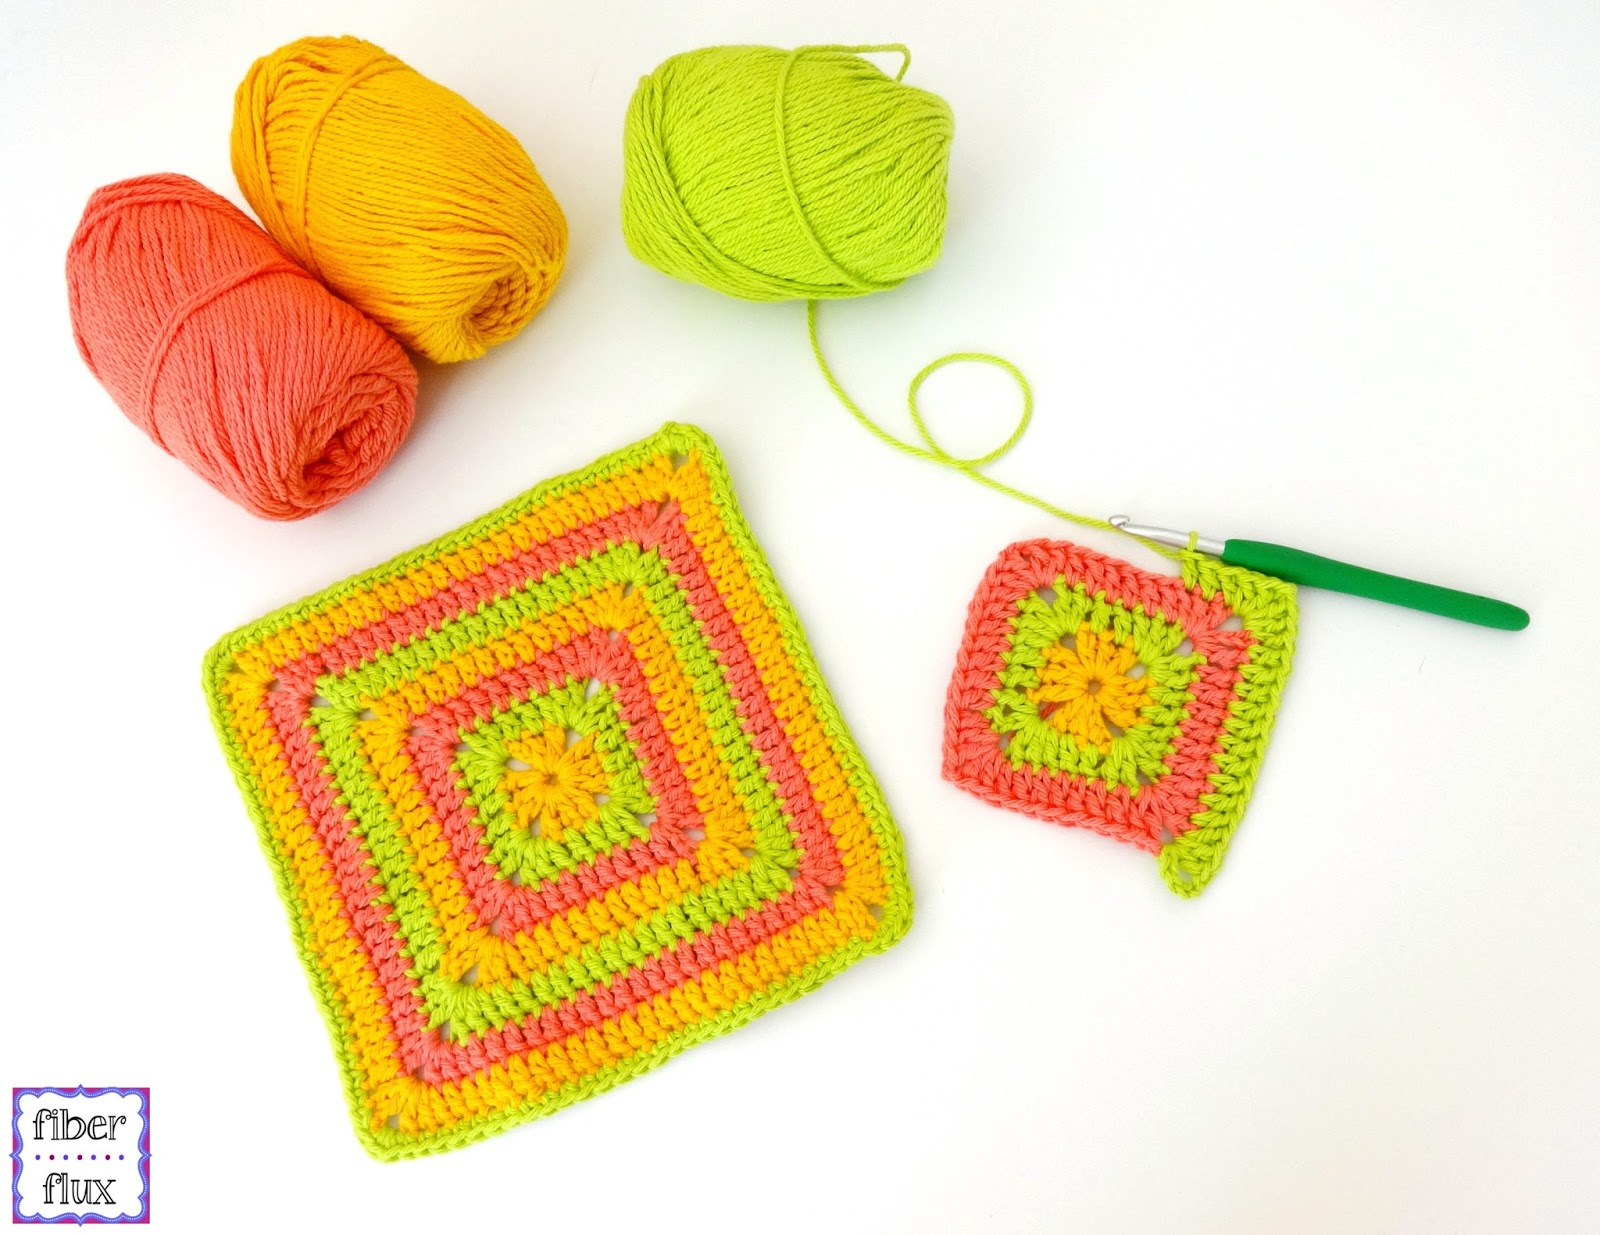 Fiber Flux: Free Crochet Pattern...Tropical Punch Dishcloth!